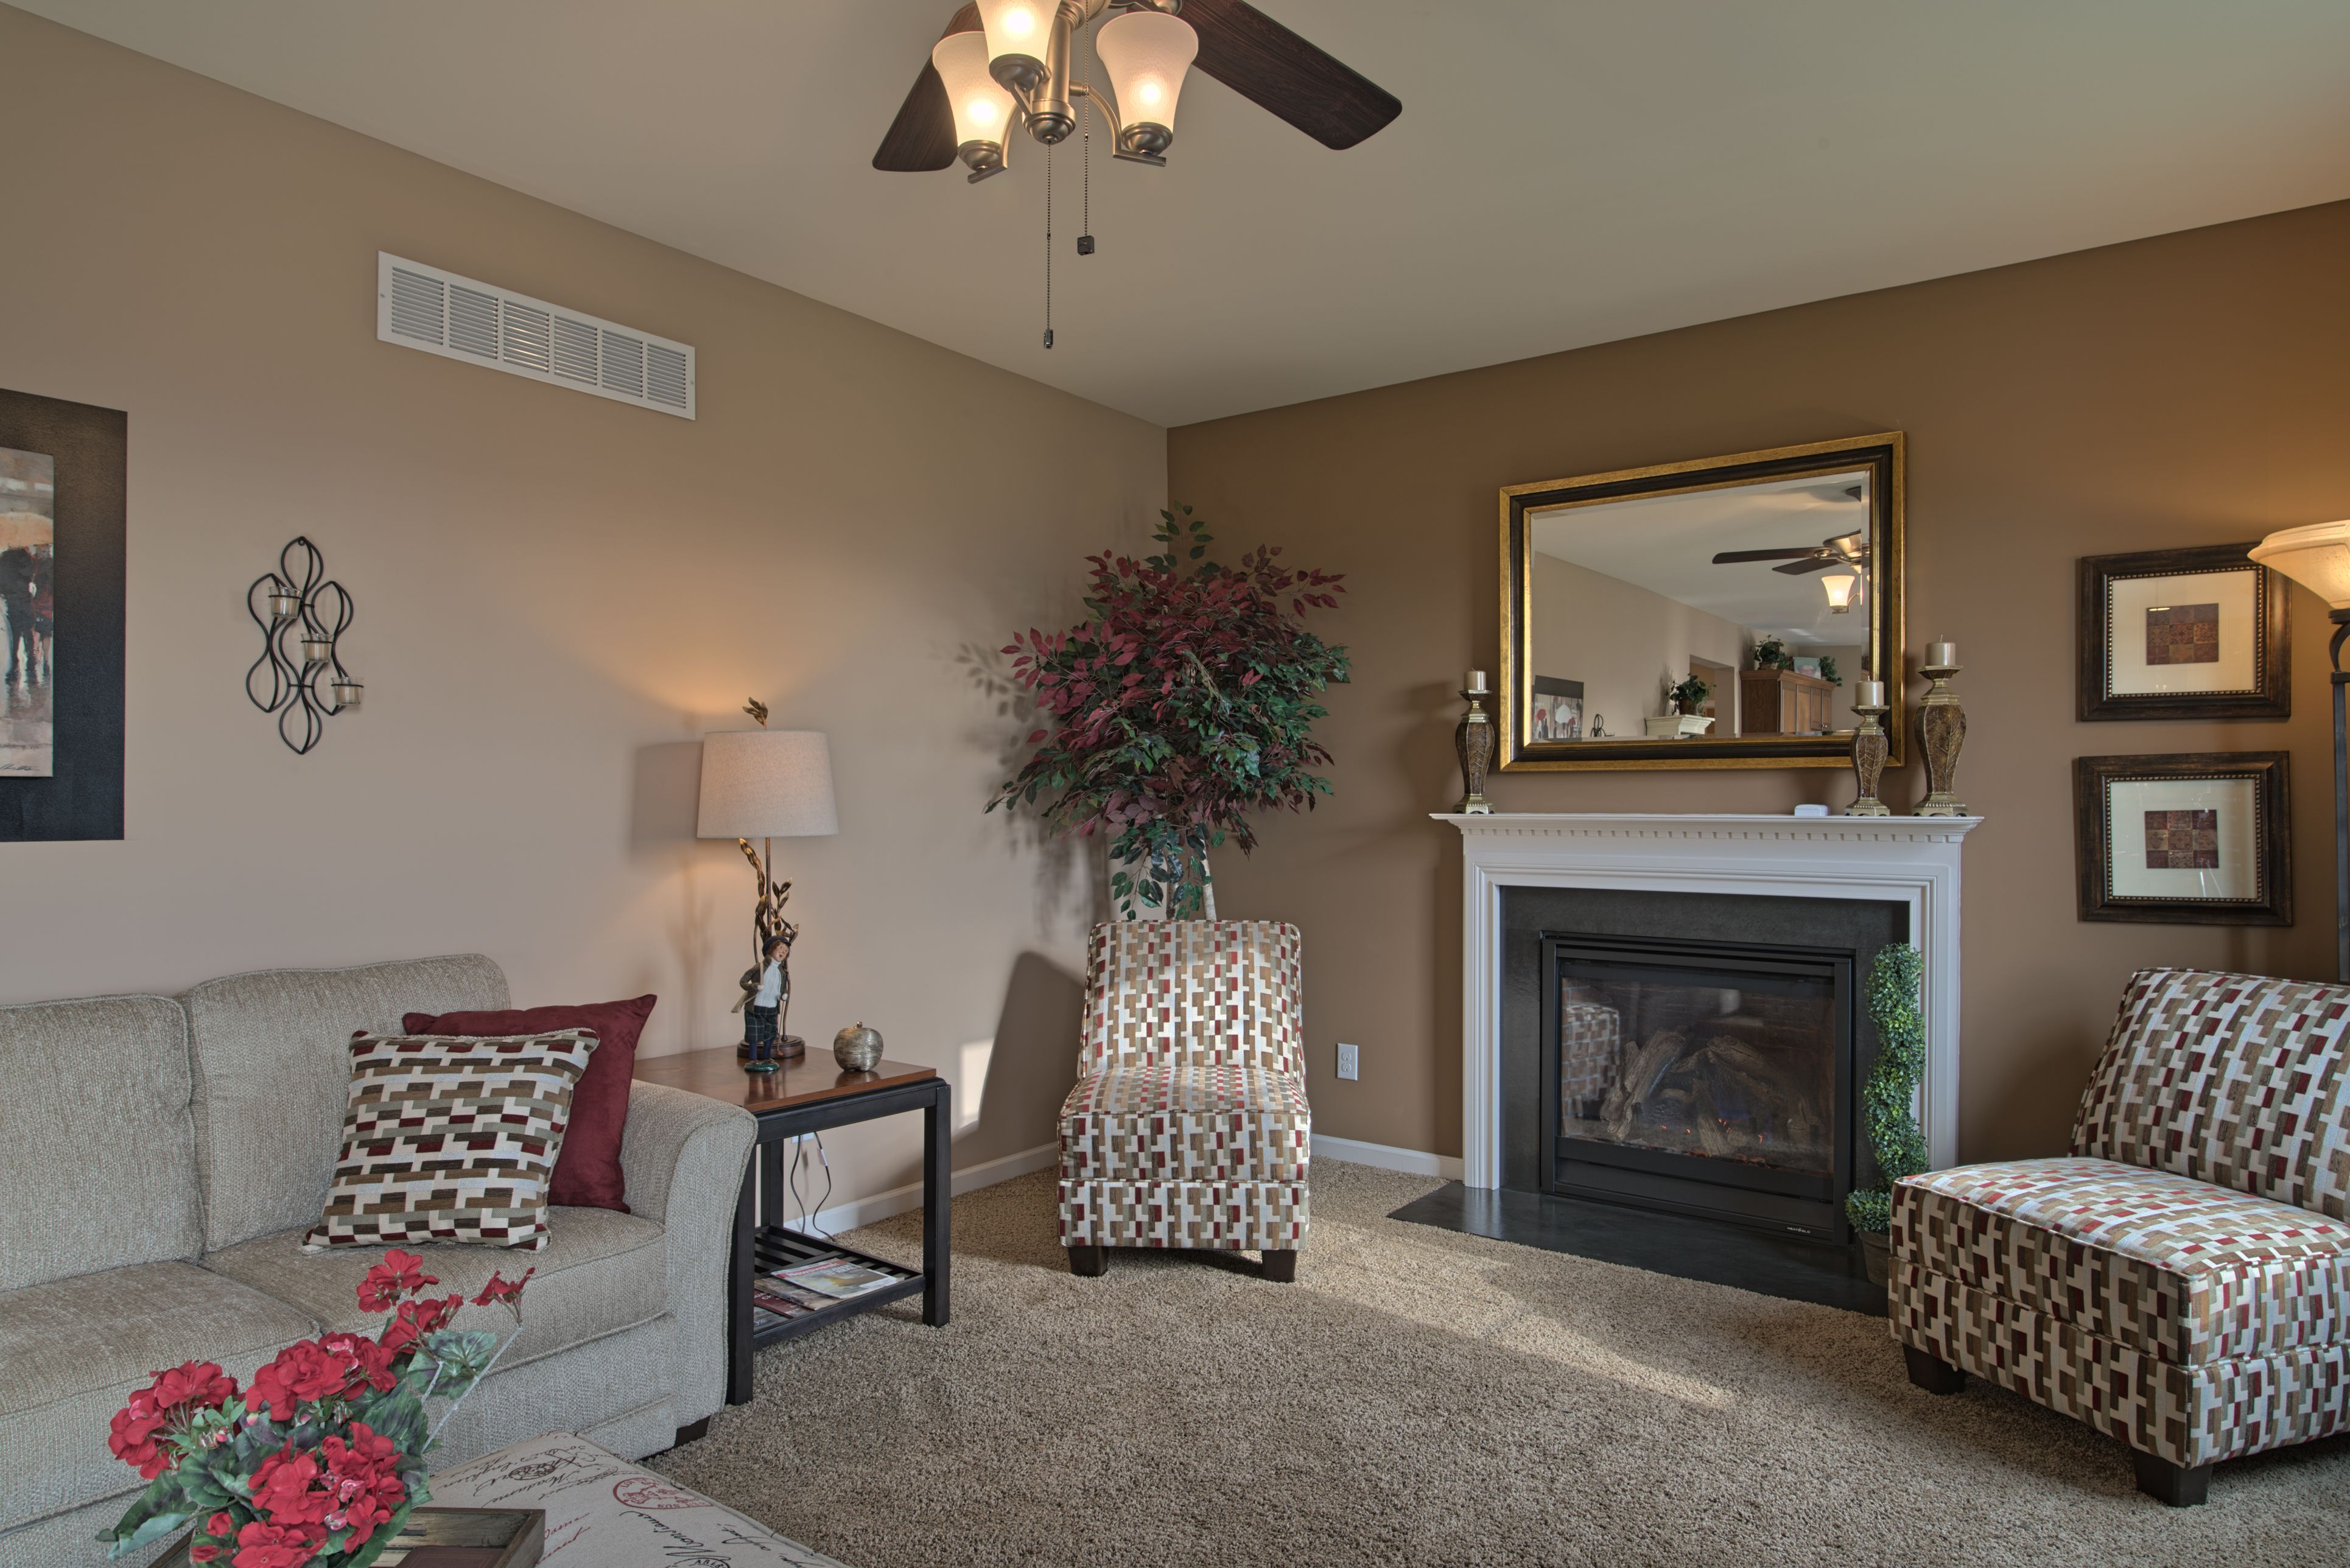 Our Longwood Model Home For More About Rouse Chamberlin Homes And To View Our Floor Plans And Communities Please Log On To Our W Model Homes Home Home Decor